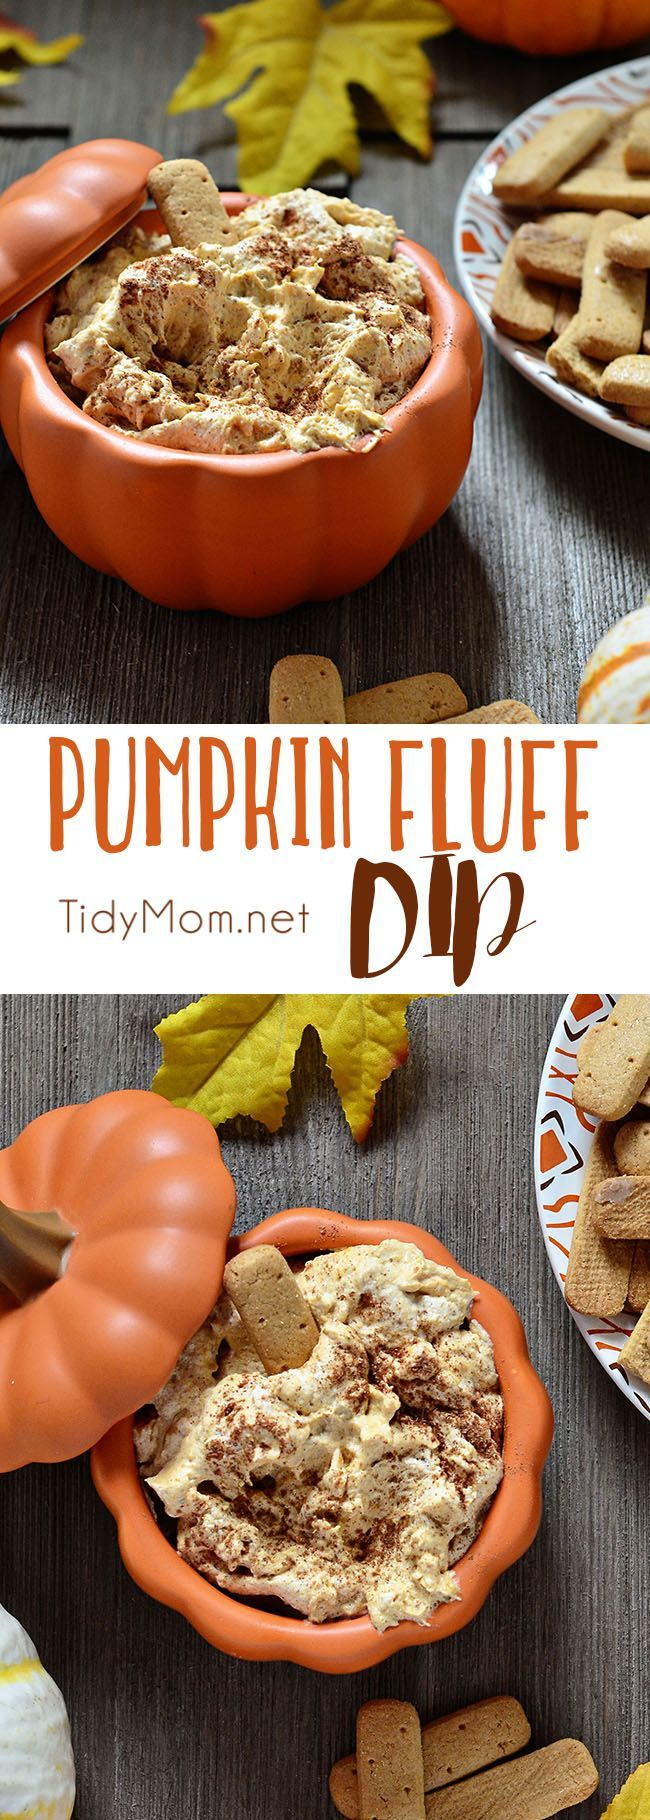 Pumpkin Fluff is a creamy, fluffy favorite fall treat. Serve with graham crackers or stuff into a cannoli shell or just dig in with a spoon. It's full of fiber, and if you use sugar free/fat free pudding mix, Cool Whip Lite and 1% milk it's a low cal trea